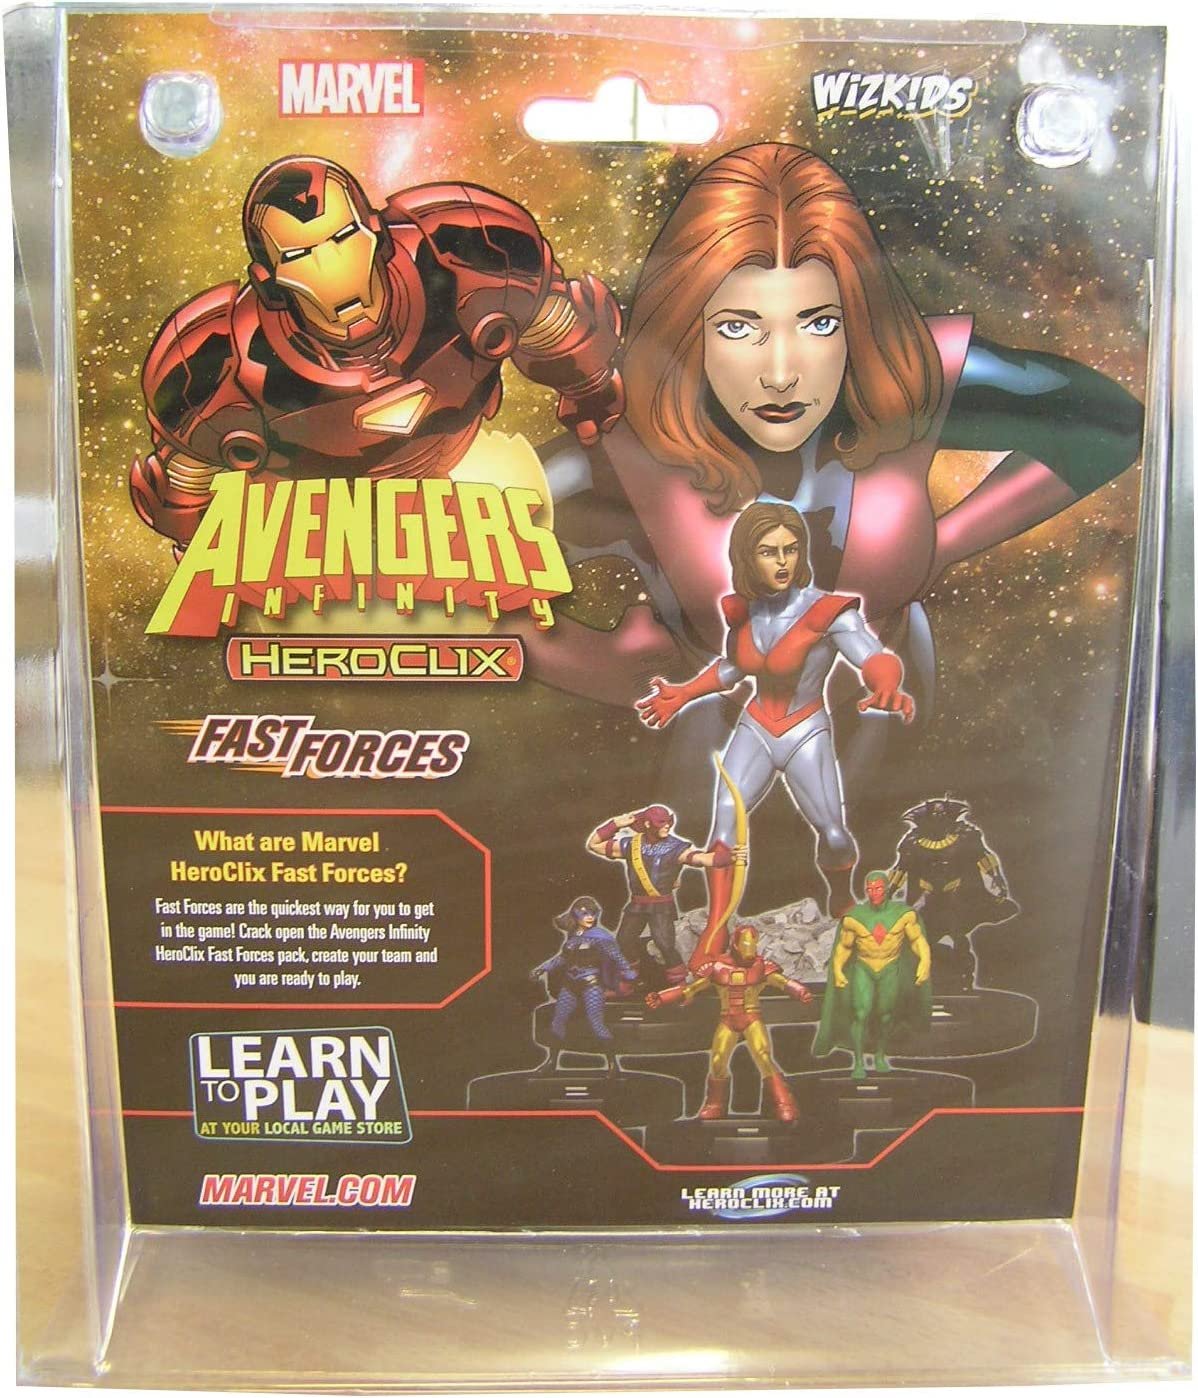 Avengers Infinity Fast Forces Wizkids WZK73150 Marvel Heroclix